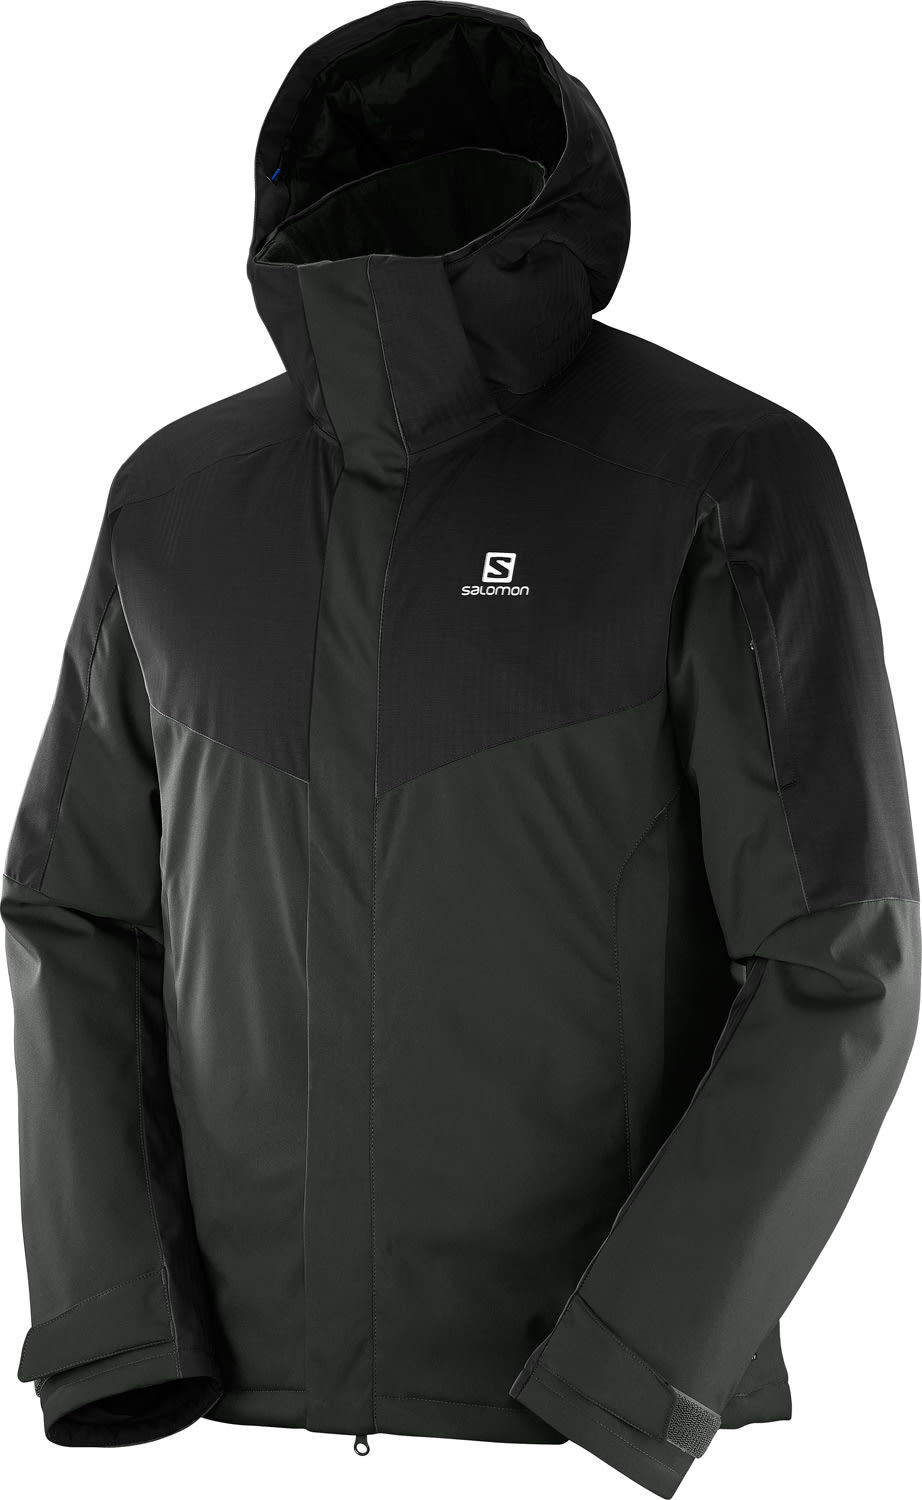 Salomon Stormpulse Ski Jacket On Sale 9b34223f5